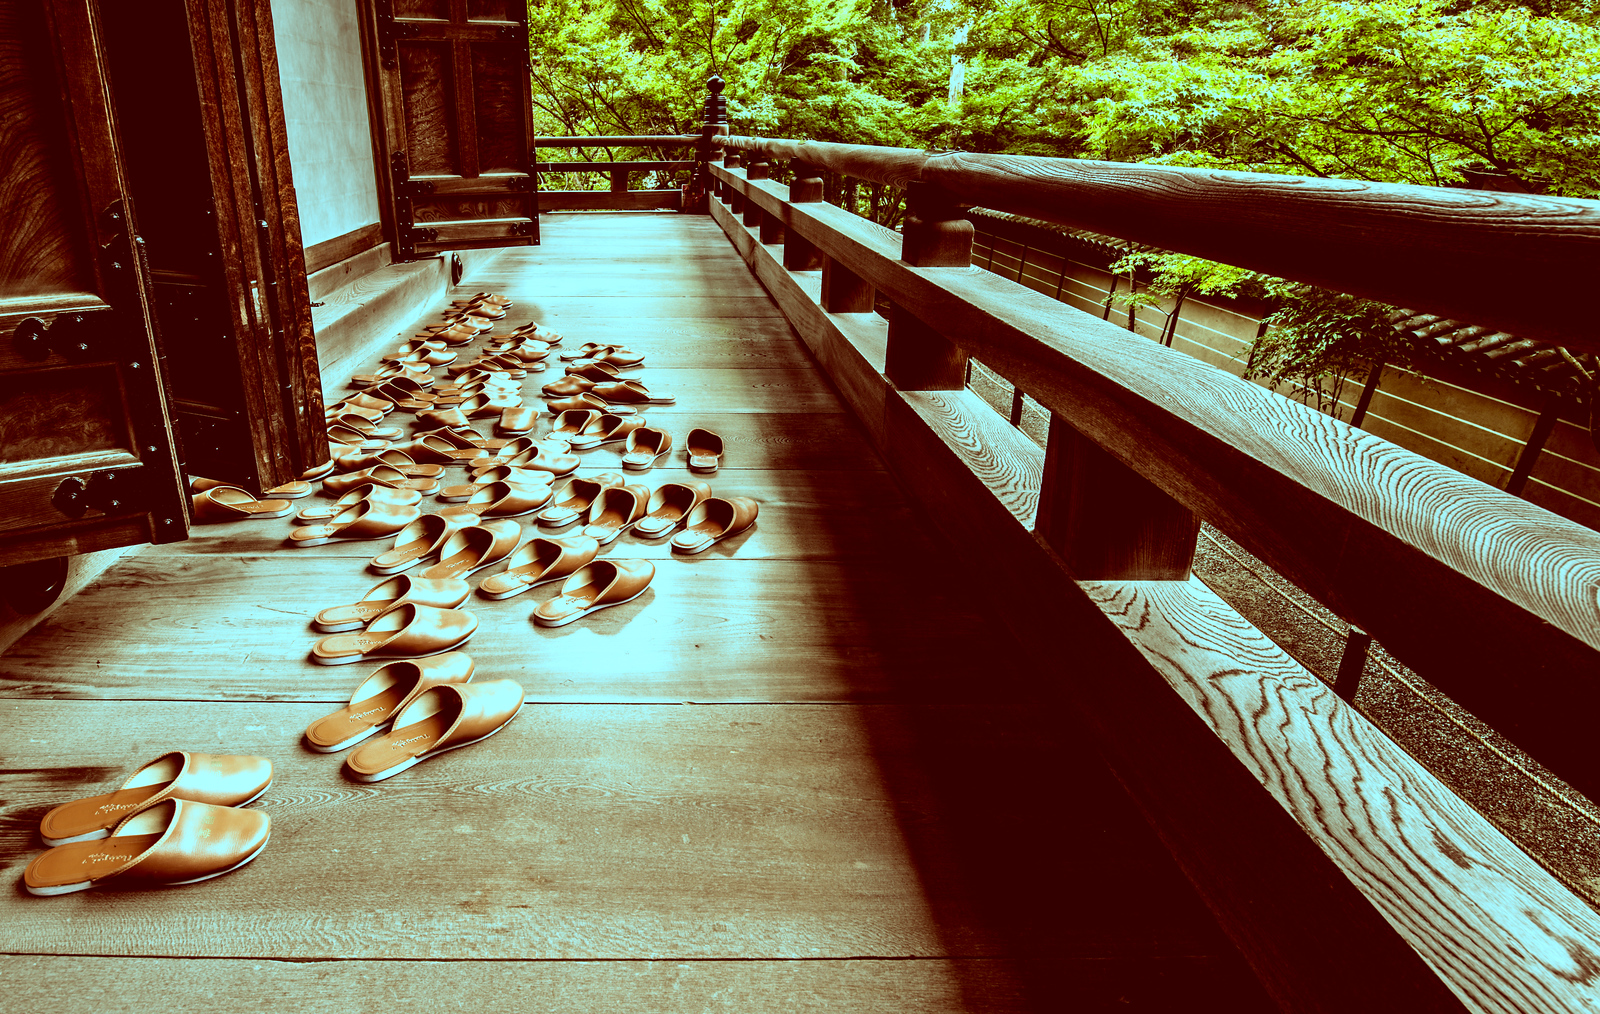 Sandals of the Monks